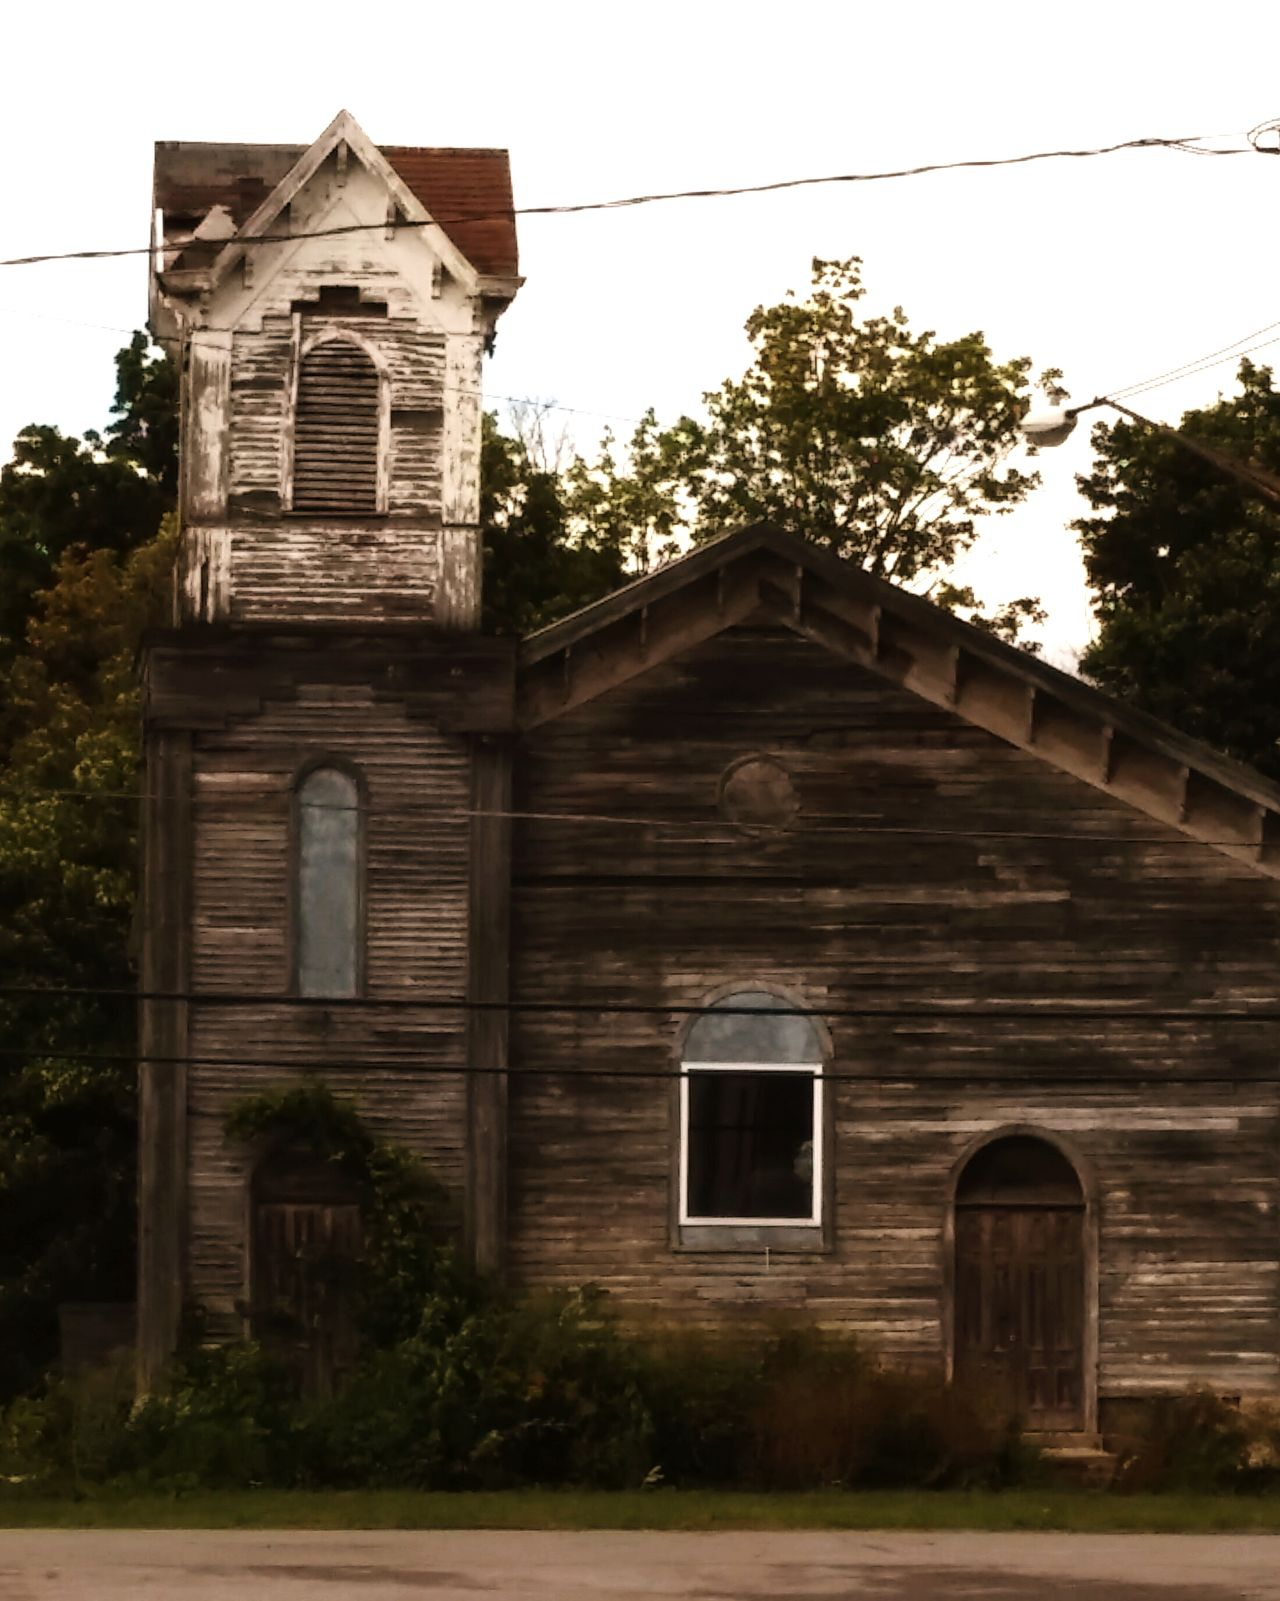 Taking Photos Old House Summer2015 Old Building Structure Haunting Outdoors Striking Check This Out History Hanging Out Whats In The Window?